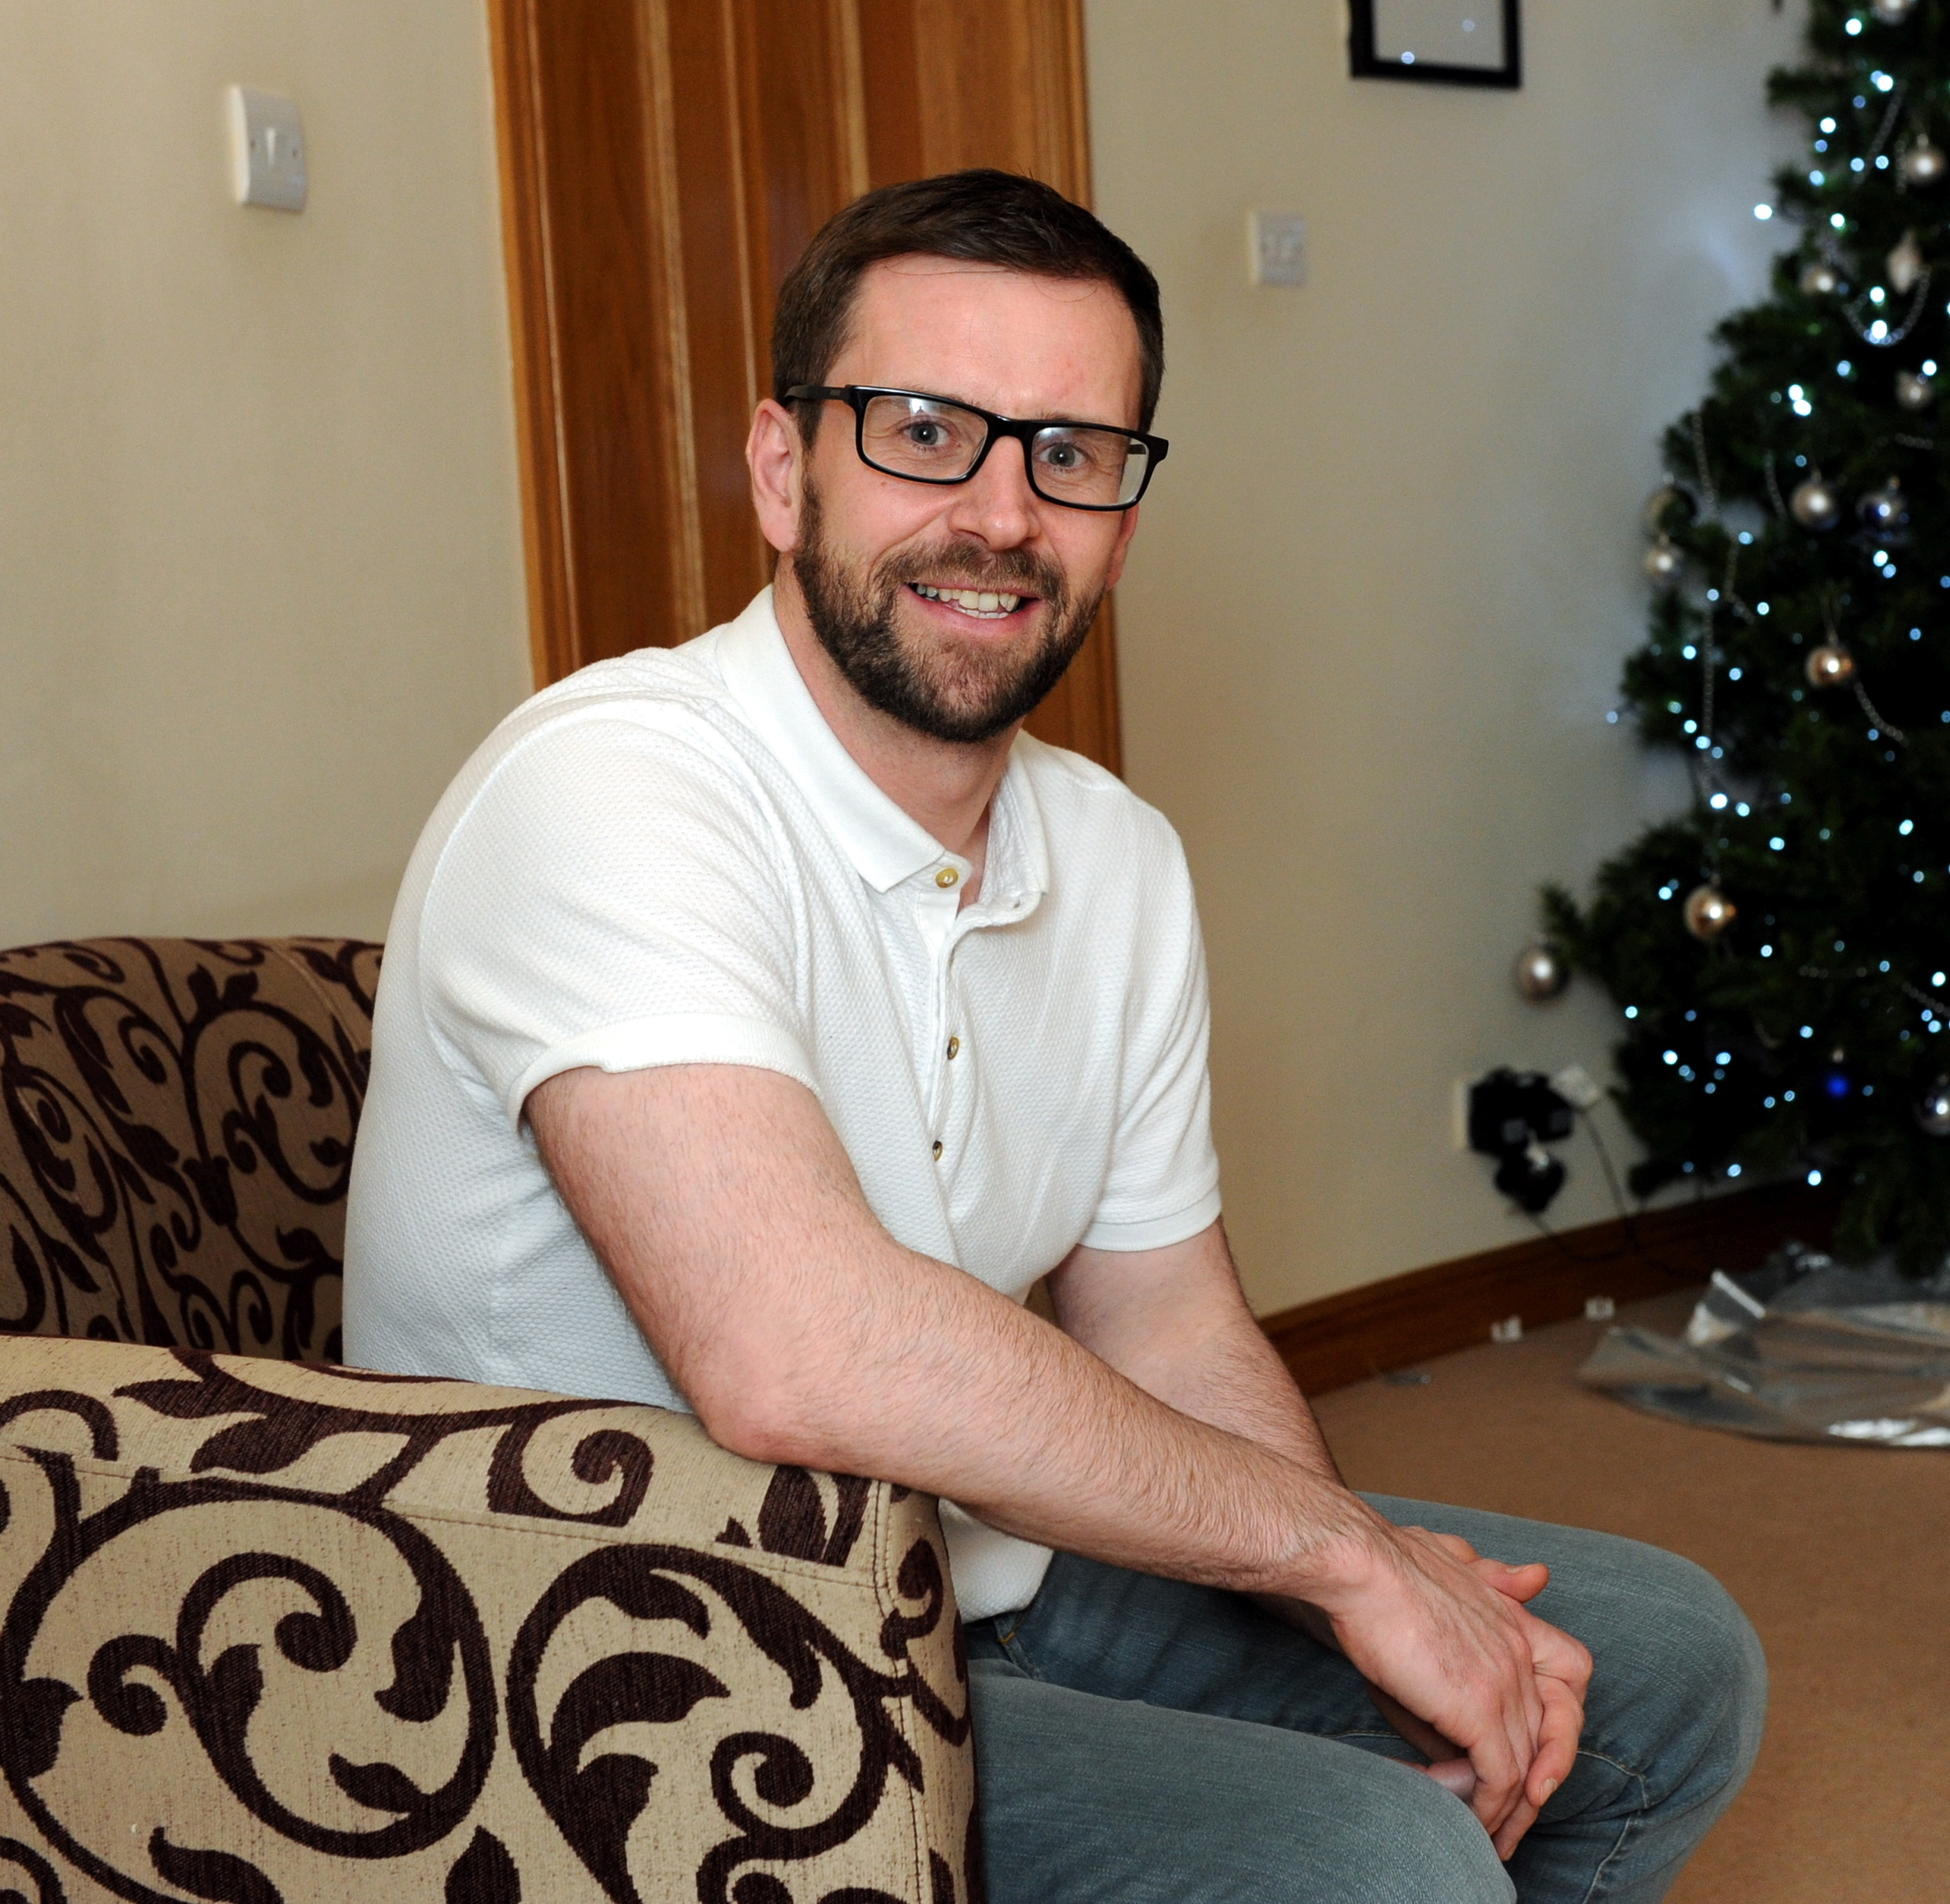 Support worker and PR co-ordinator Paul Beaton.